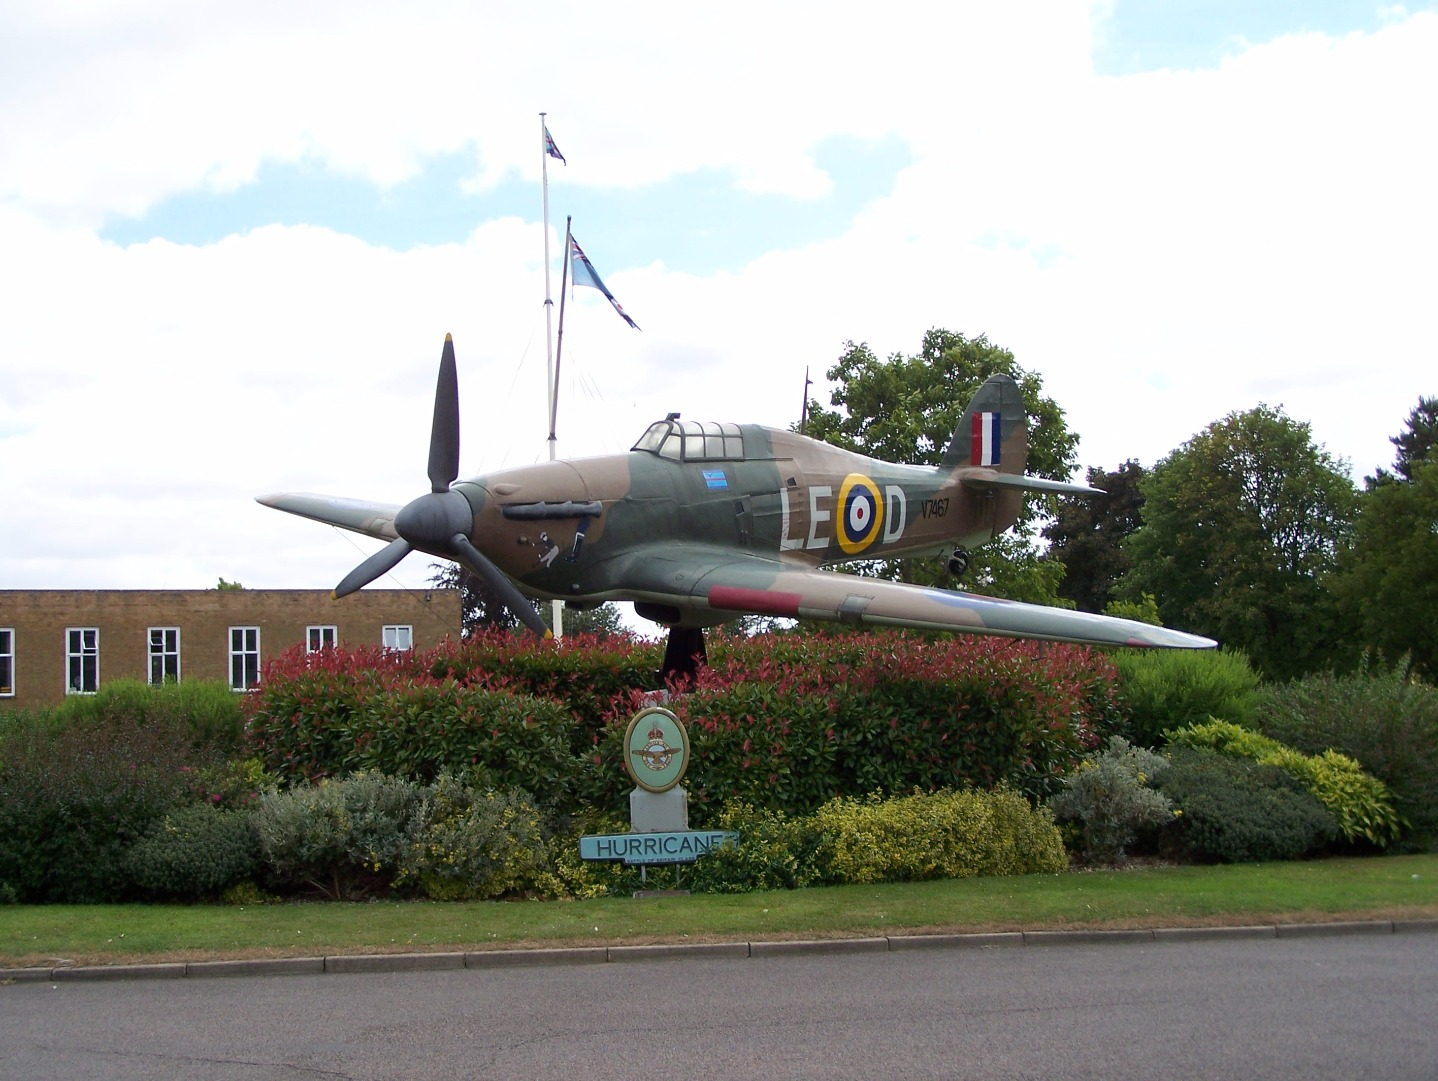 006Replica Hawker Hurricane gate guardian inside the station entrance 14:7:06.JPG